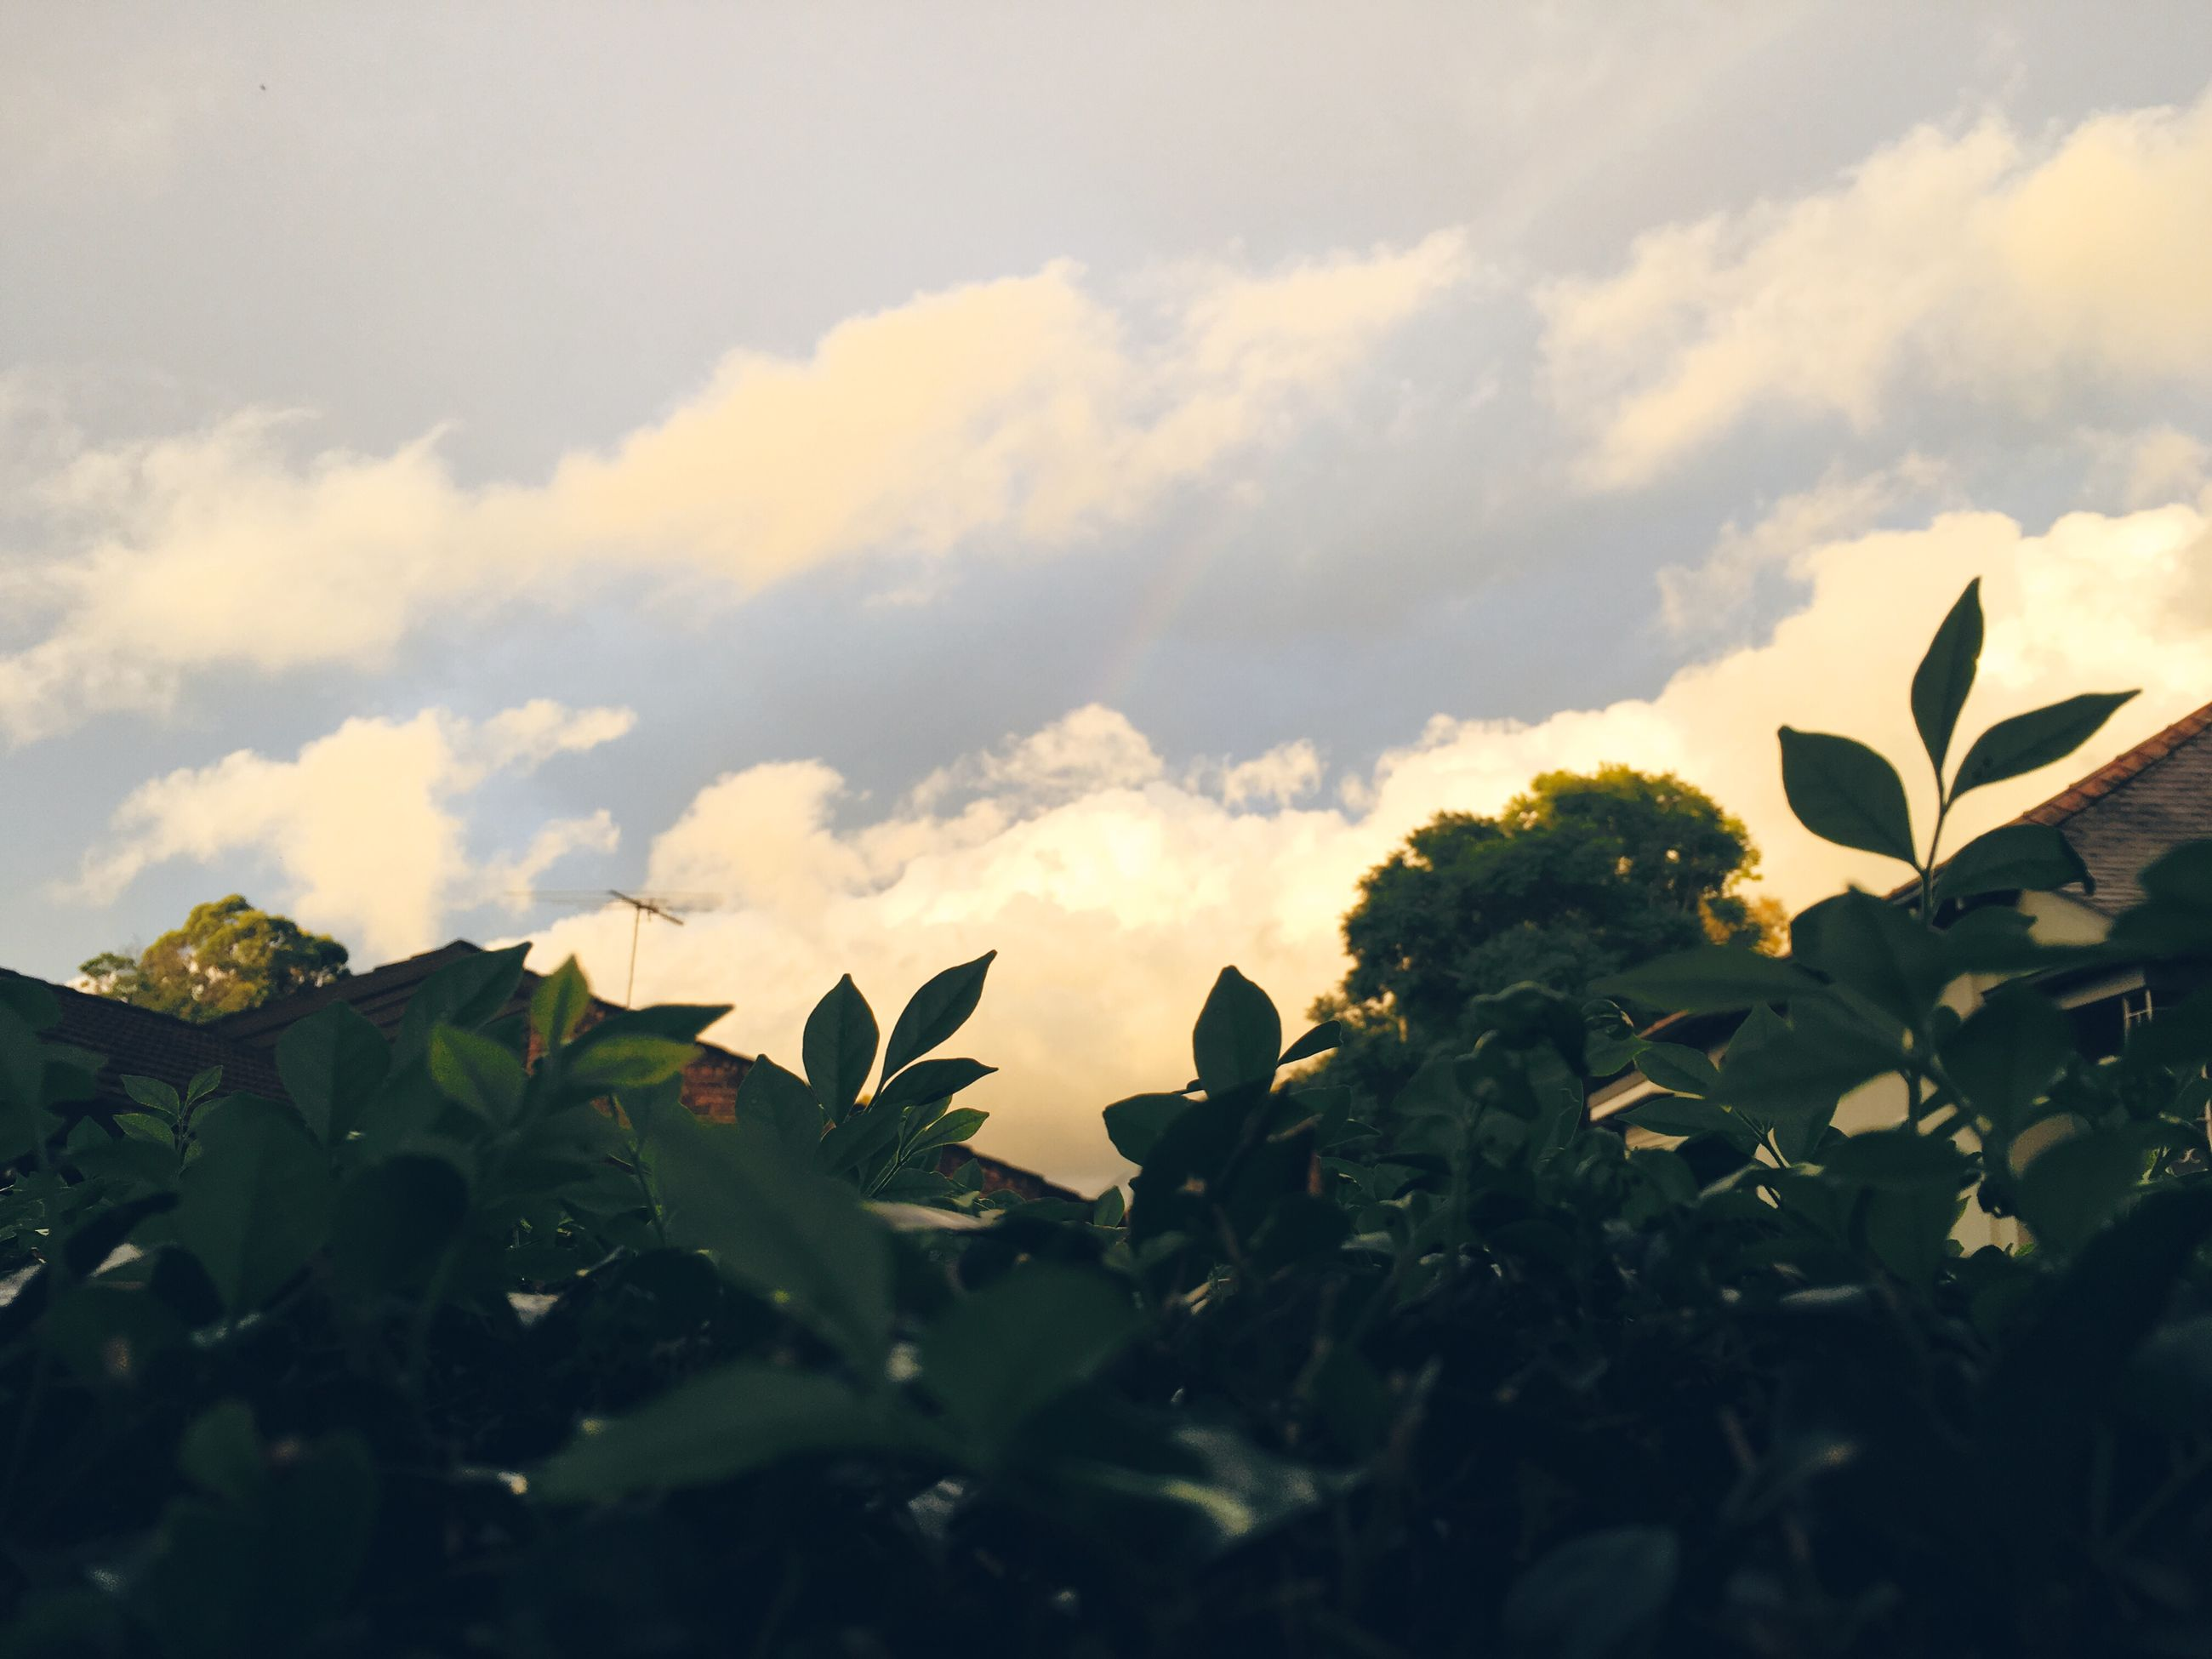 leaf, sky, plant, growth, nature, flower, cloud - sky, low angle view, beauty in nature, cloud, cloudy, close-up, fragility, freshness, day, outdoors, green color, no people, tranquility, stem